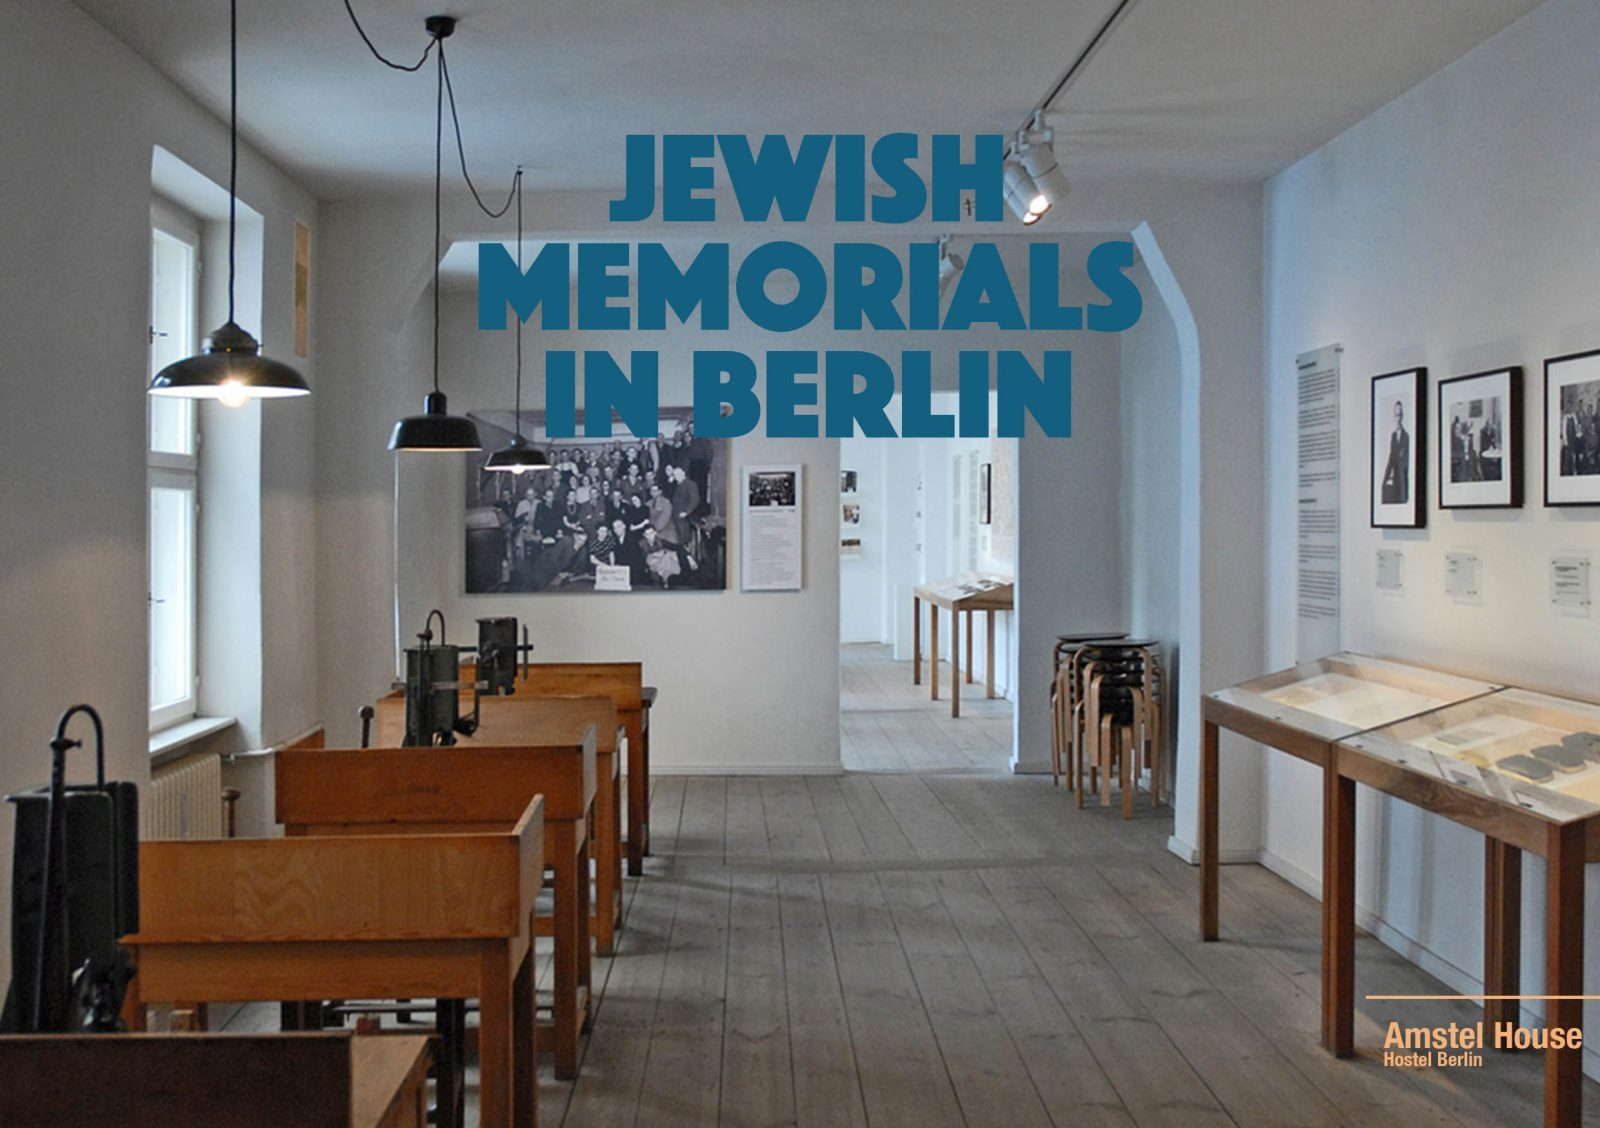 Berlin Holocaust Memorial Guide - Jewish memorials in Berlin